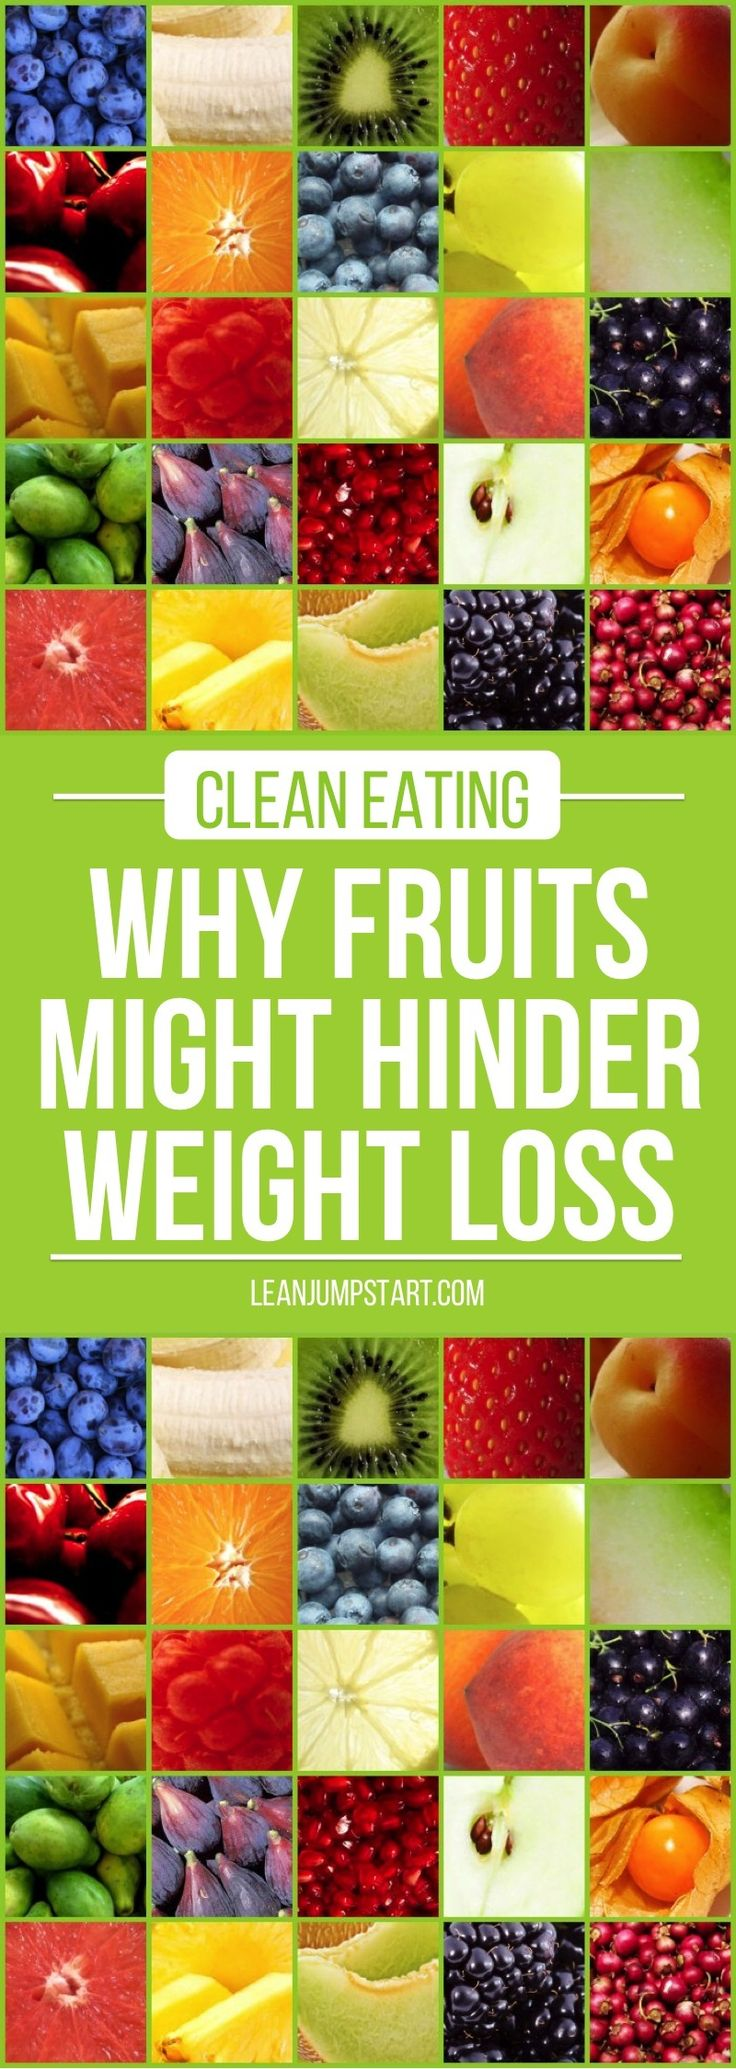 Fruit Nutrition: 3 Easy Steps to Eat more Fruits